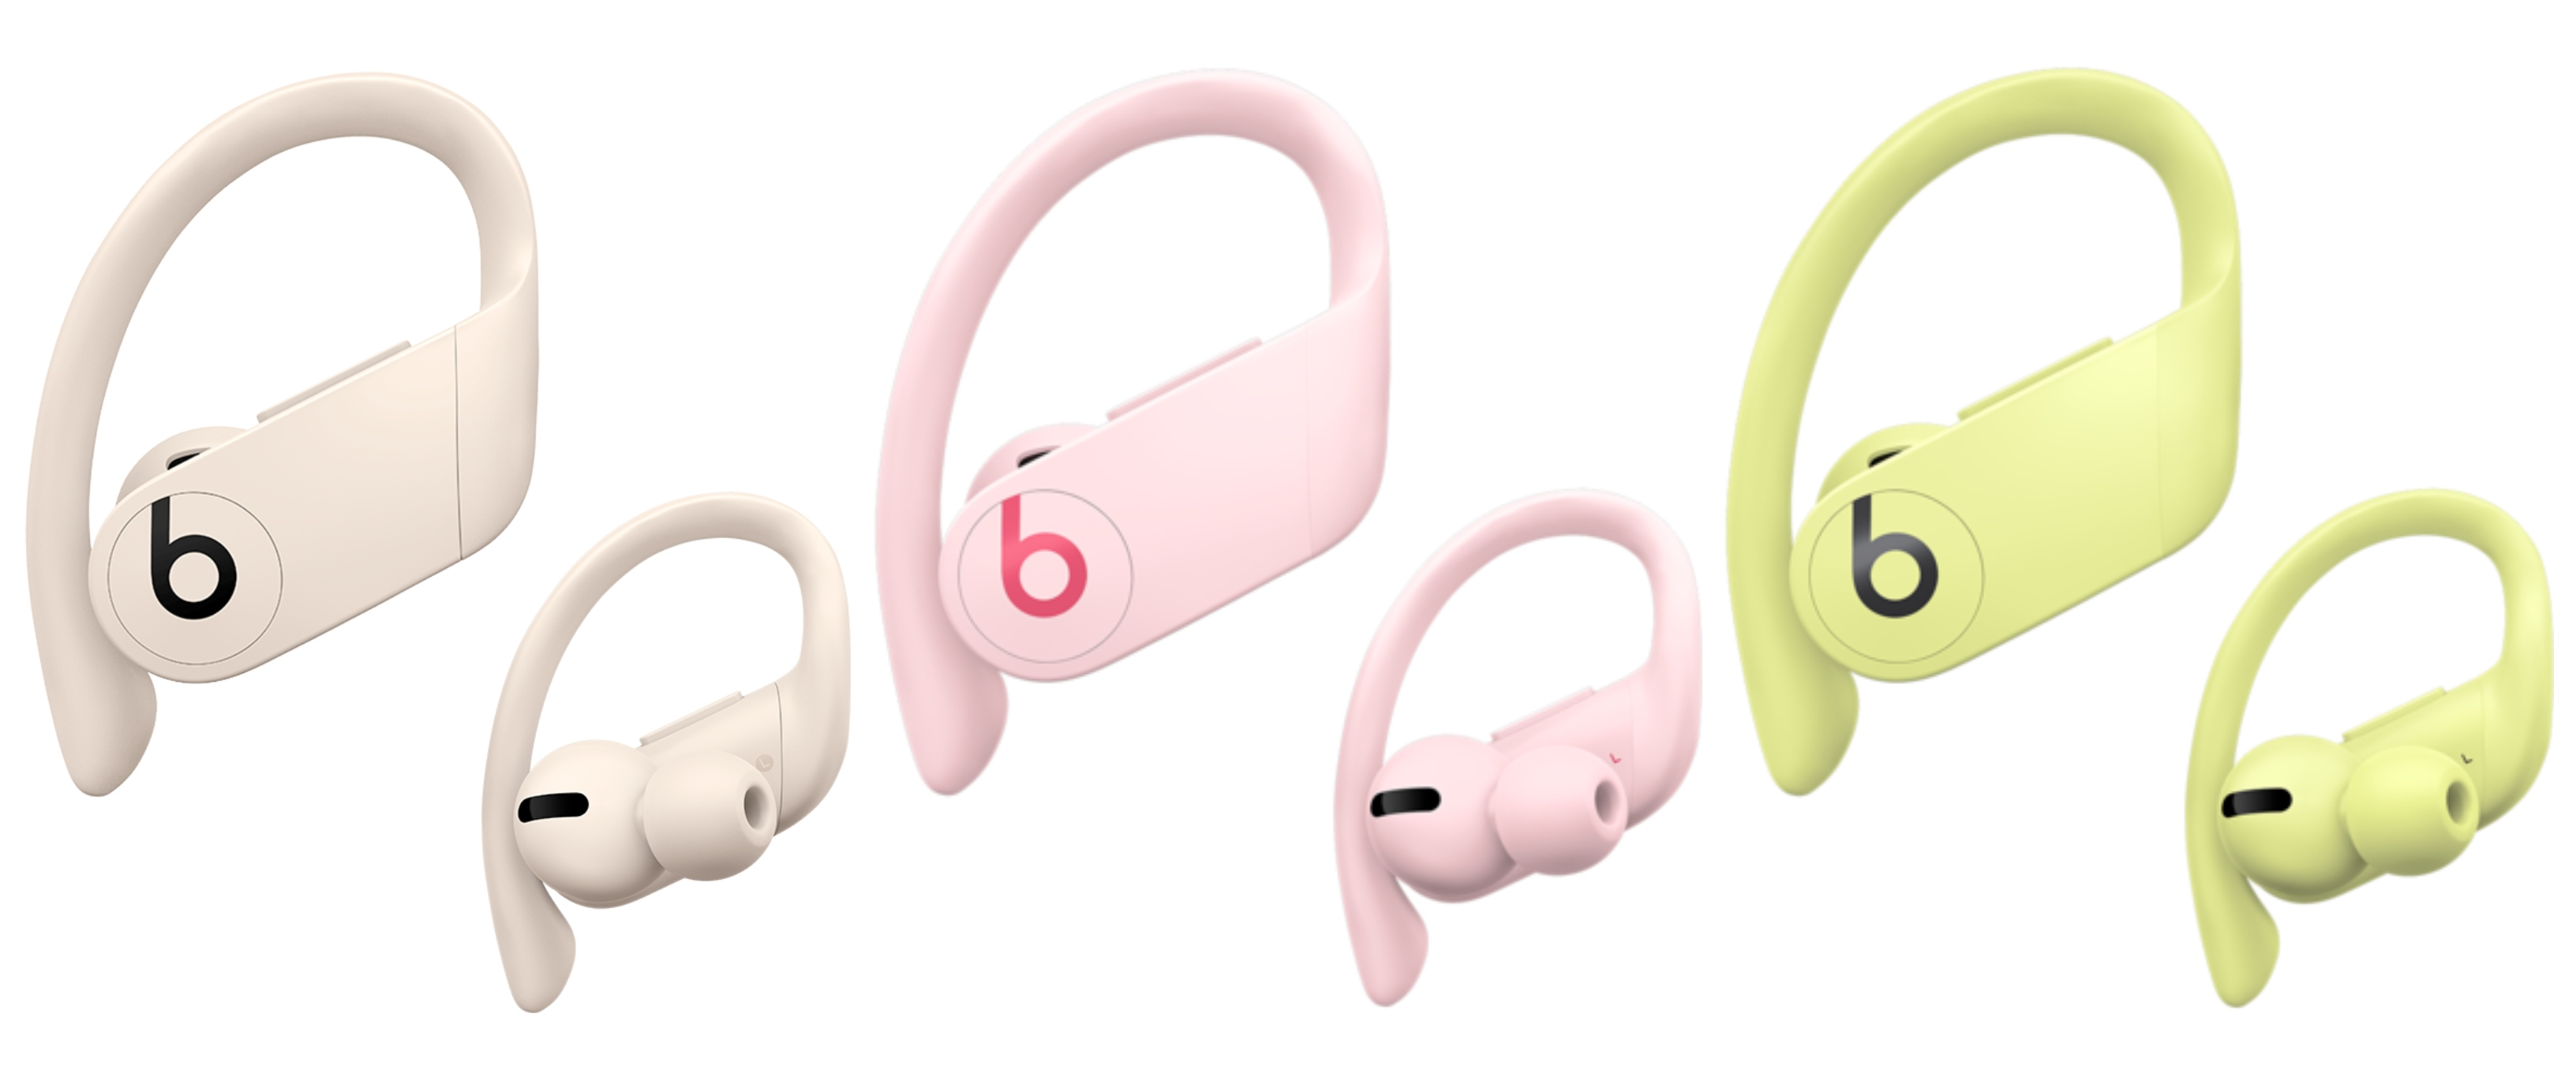 Powerbeats Pro Totally Wireless Earbuds